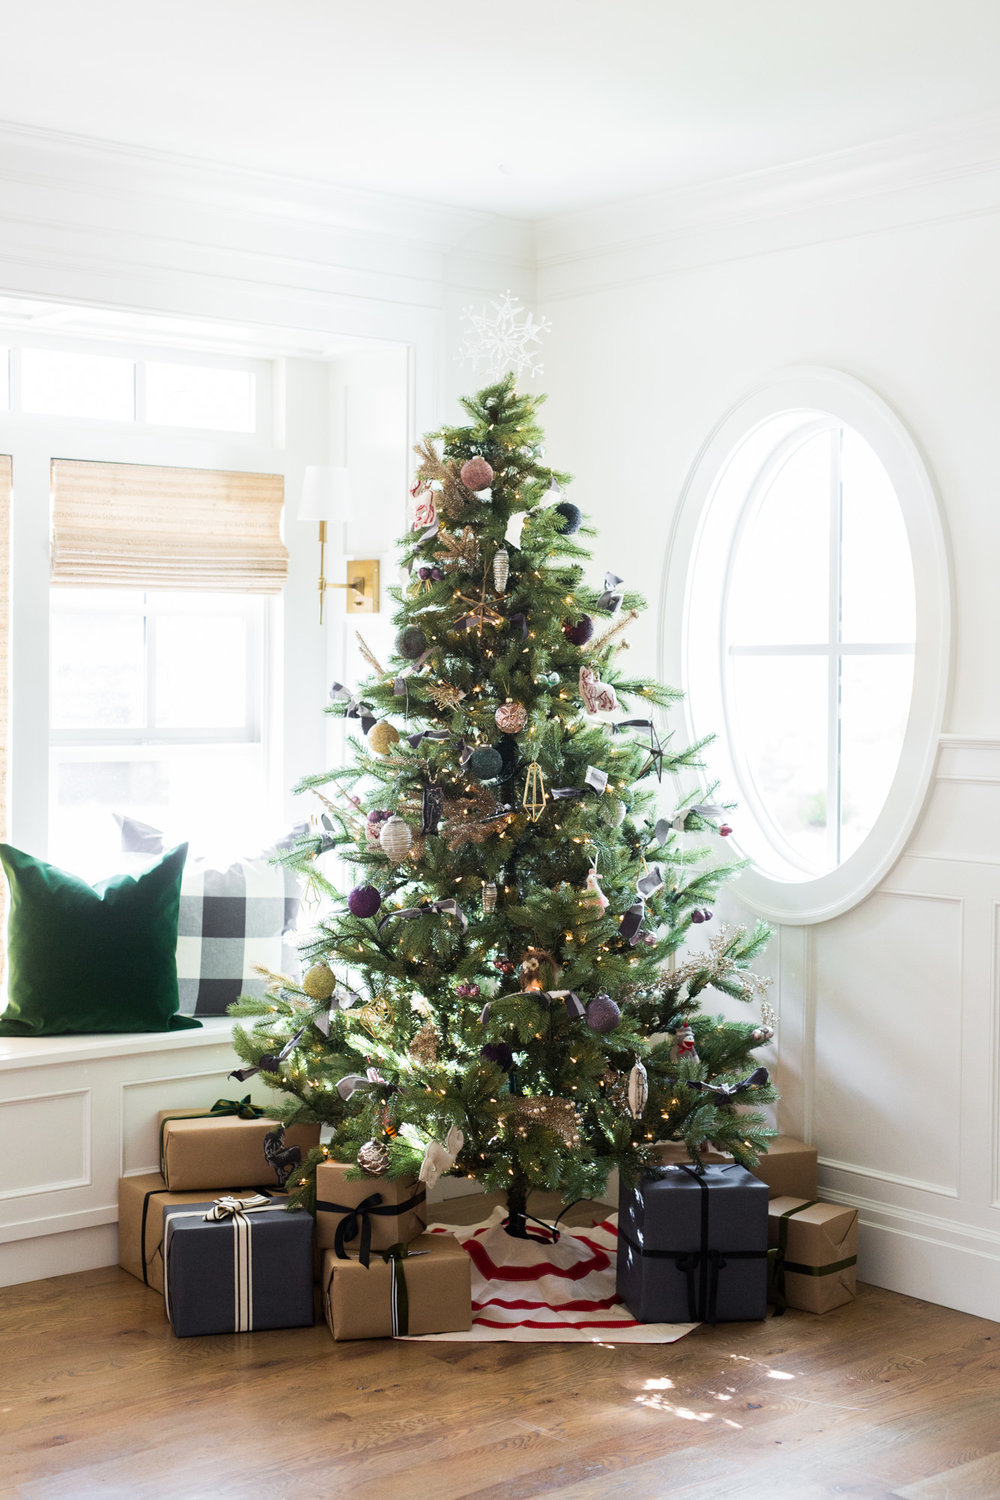 How We Decorate the Christmas Tree — STUDIO MCGEE